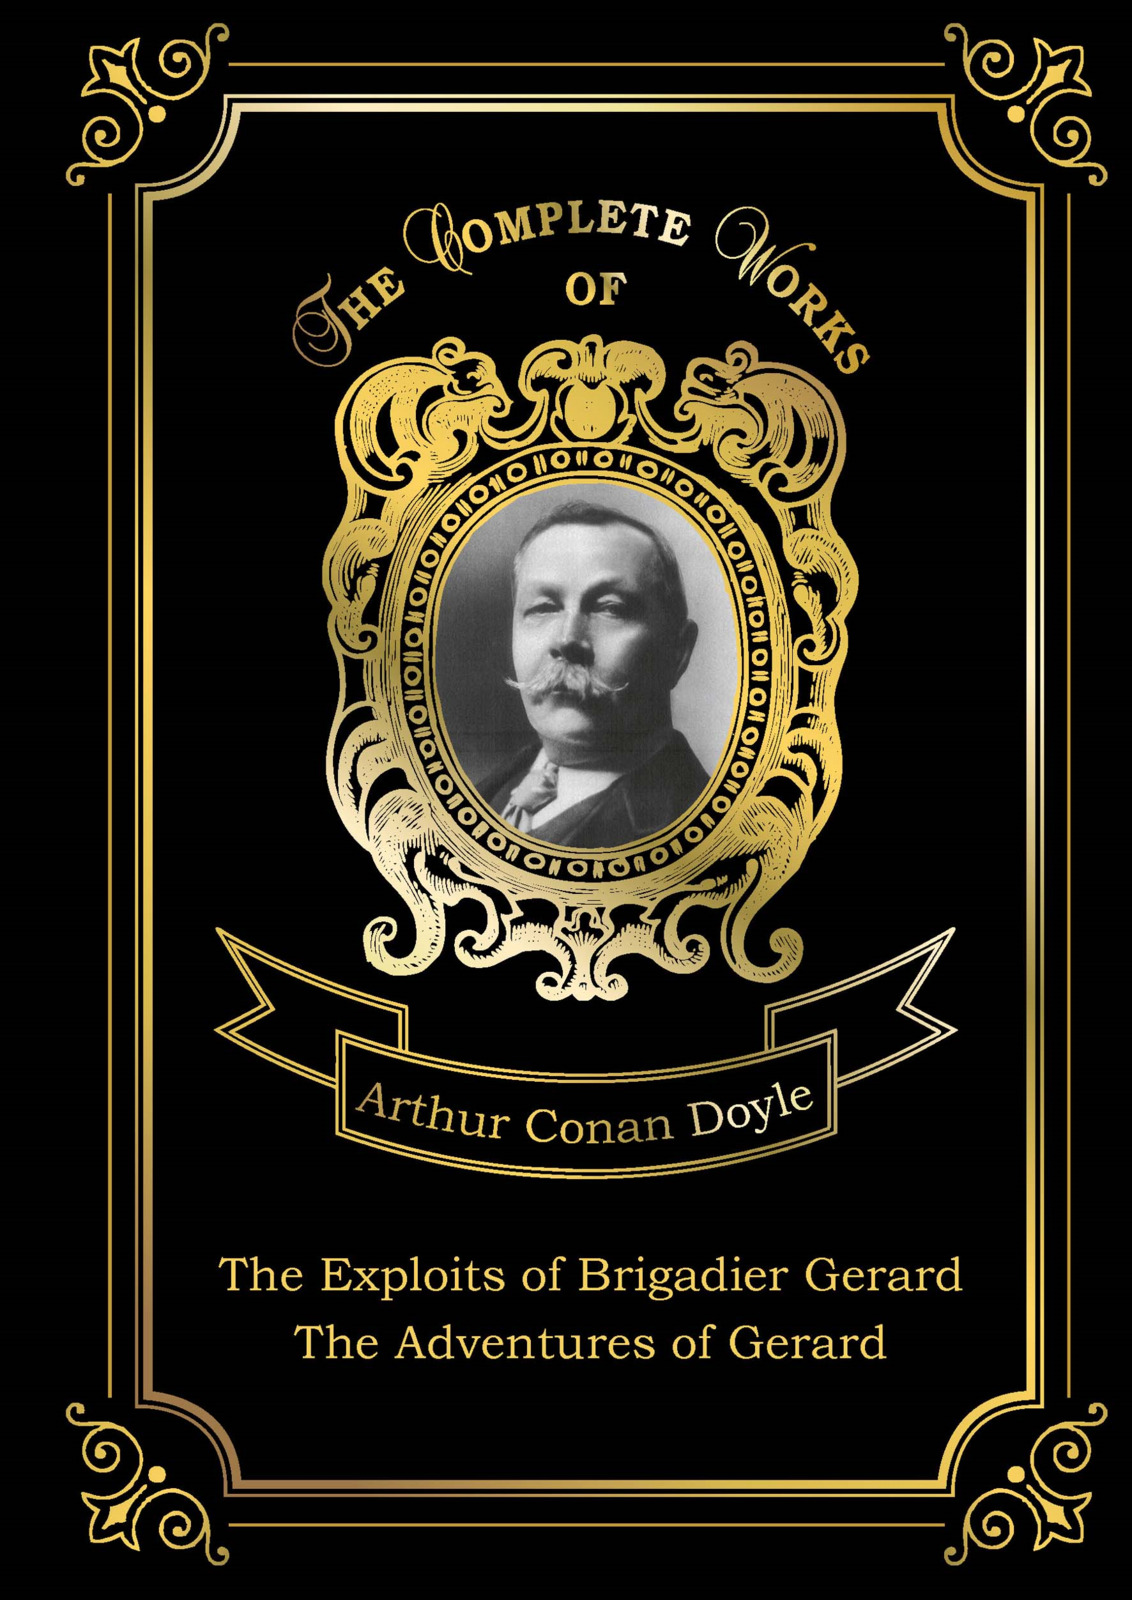 Arthur Conan Doyle The Exploits of Brigadier Gerard: The Adventures of Gerard аксессуар защитное стекло svekla для apple iphone 8 plus zs svap8plus